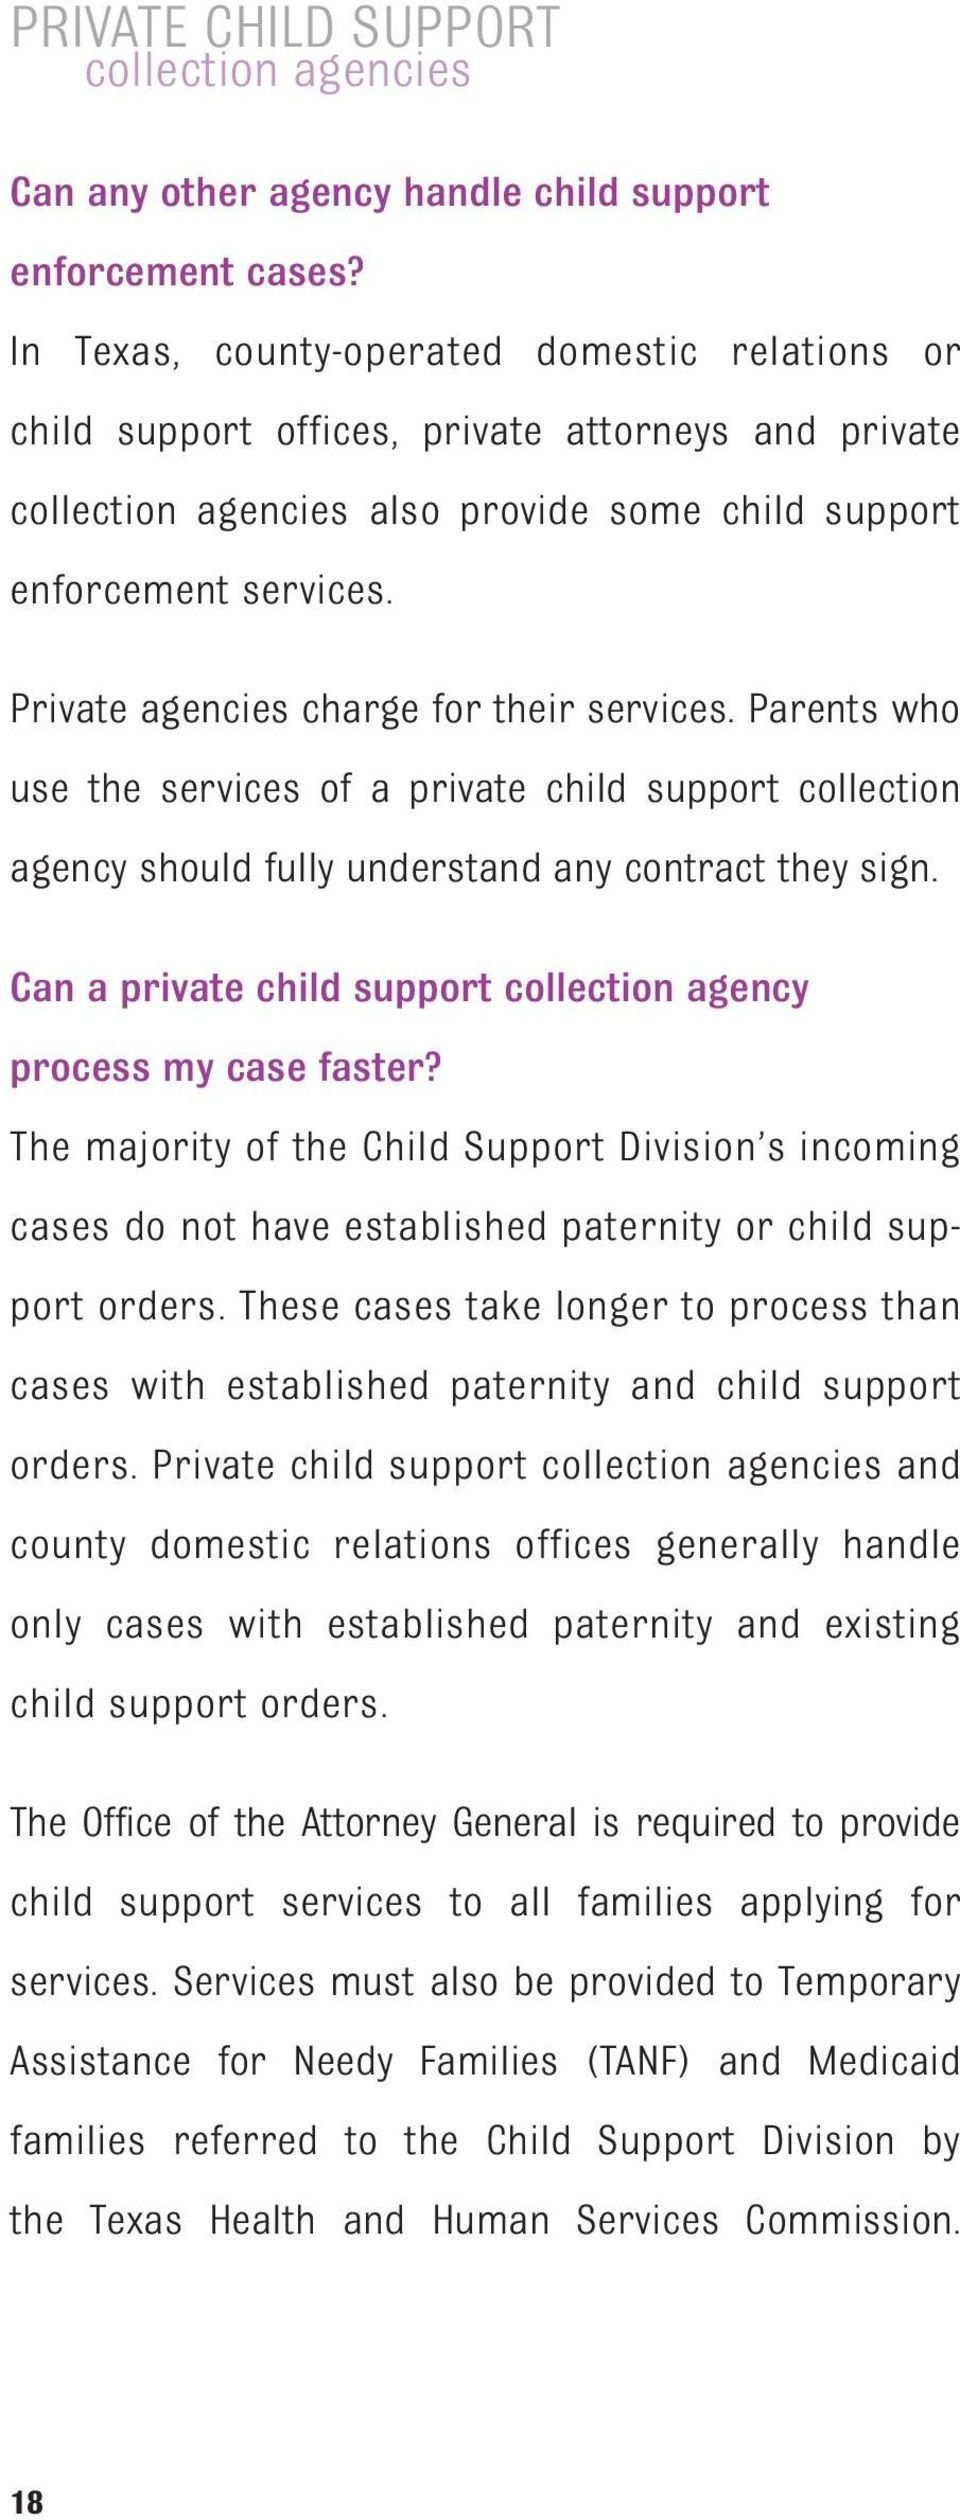 Private agencies charge for their services. Parents who use the services of a private child support collection agency should fully understand any contract they sign.